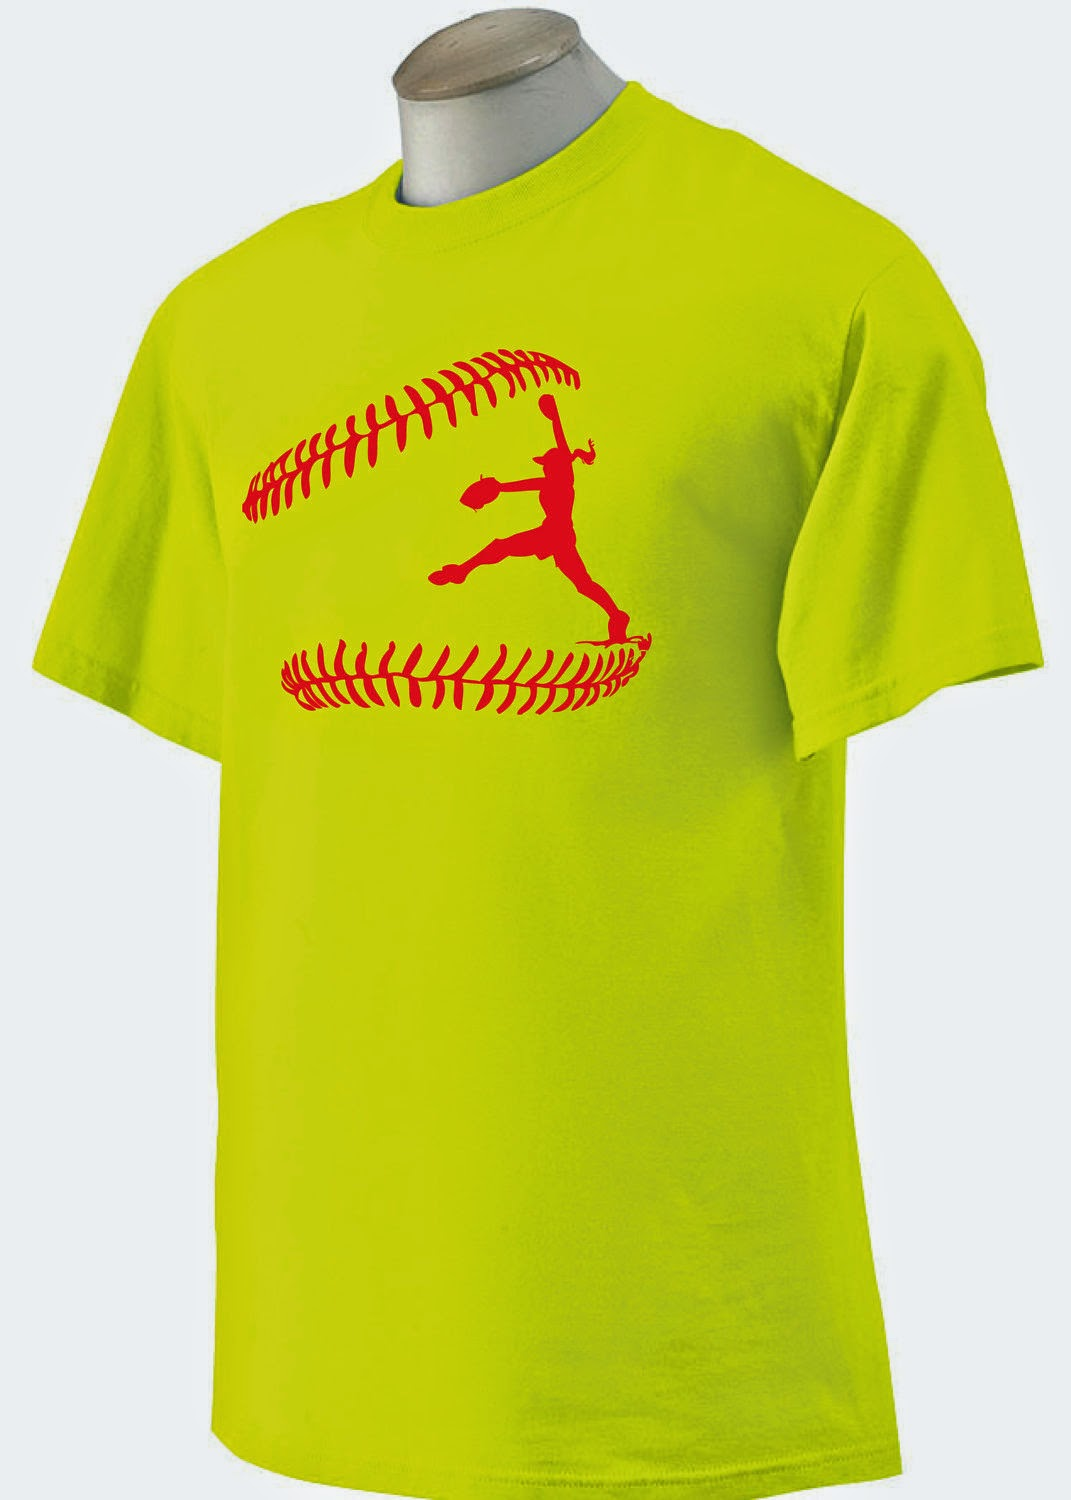 Design Softball T Shirts Bcd Tofu House